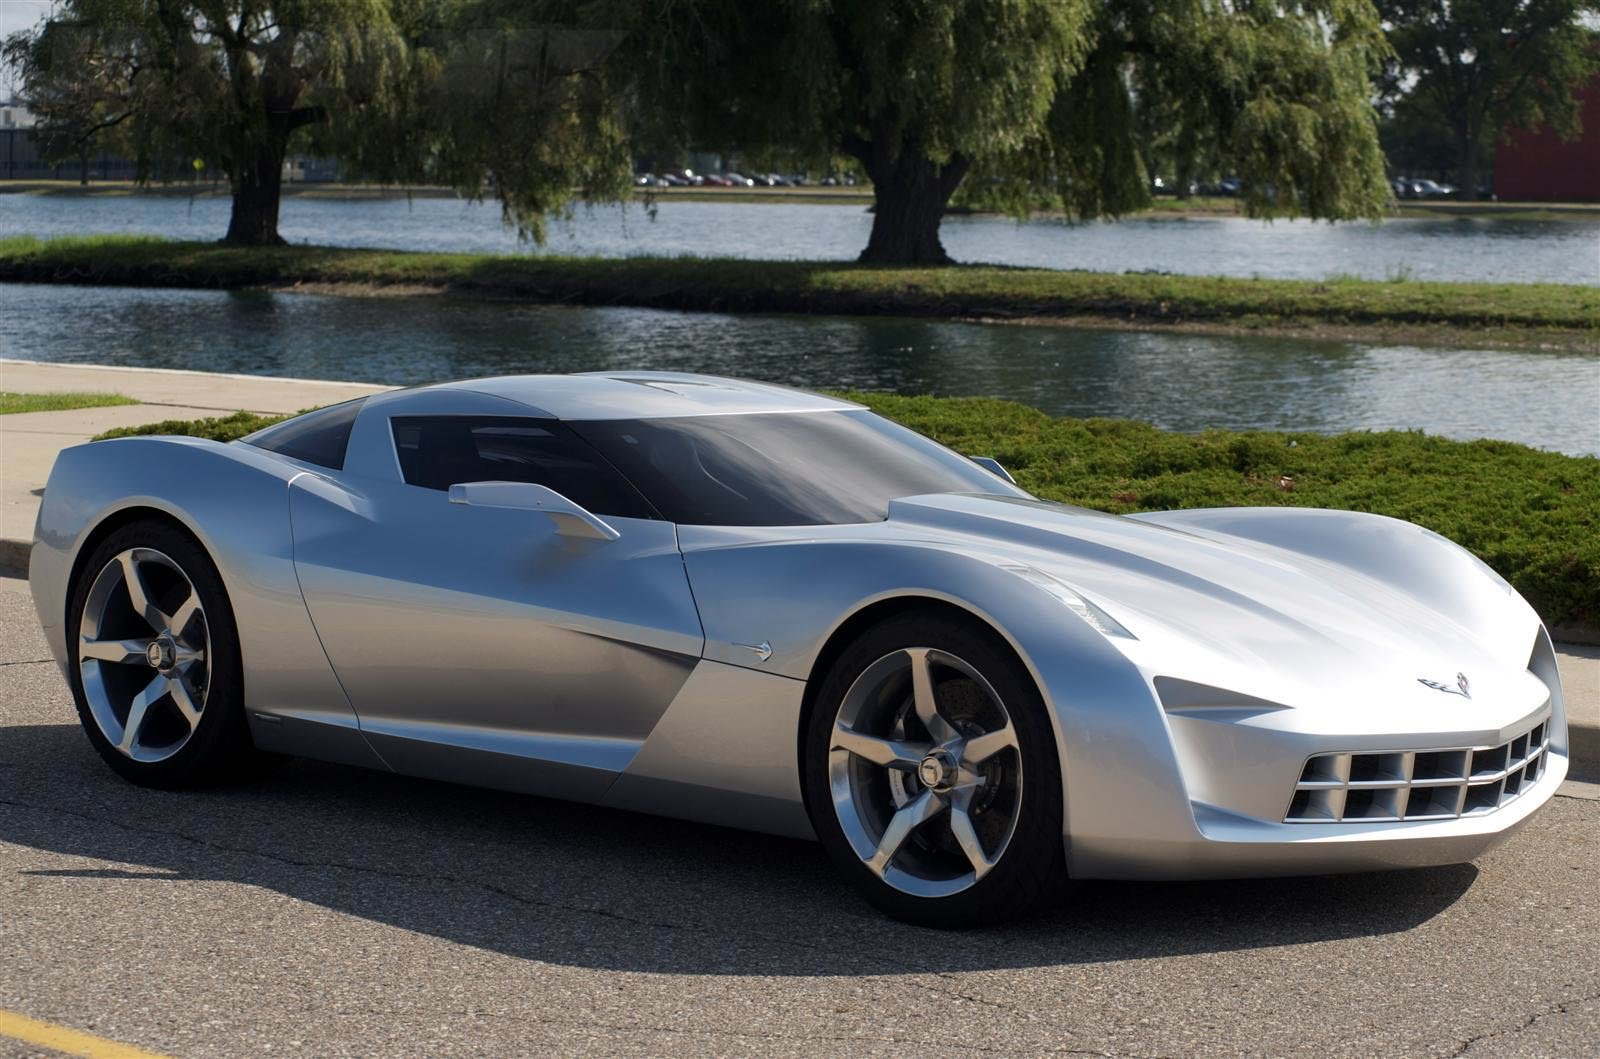 2014 Chevrolet Corvette C7 Redesign